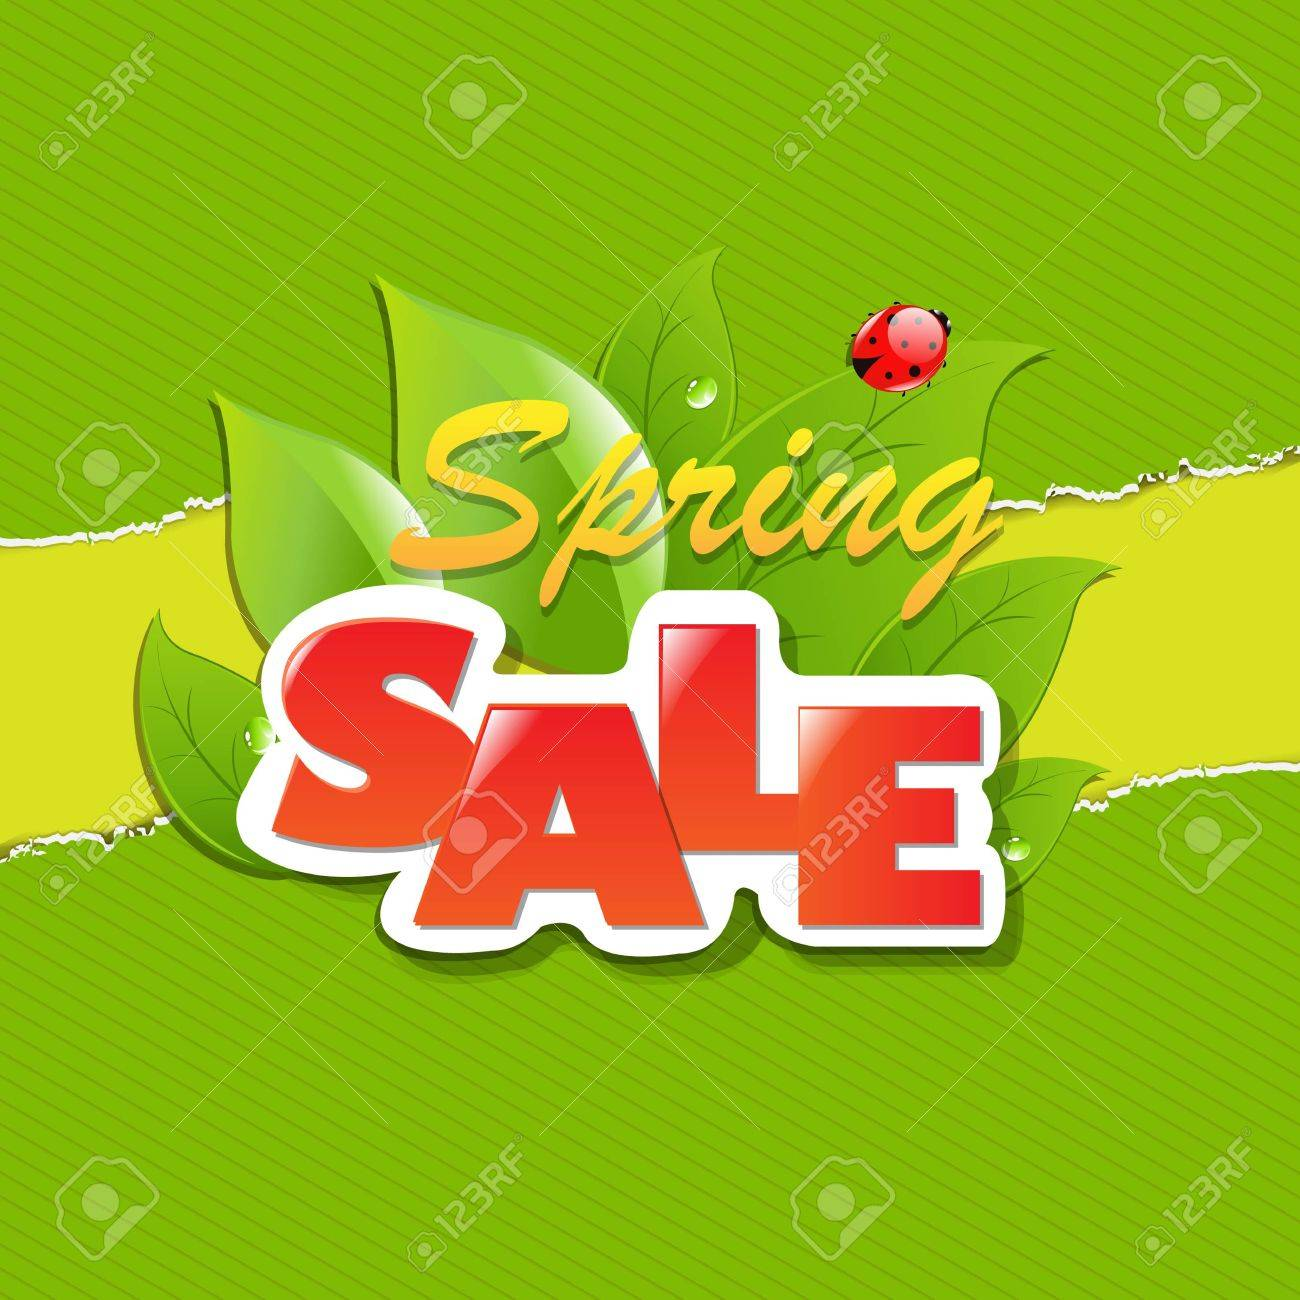 Green Torn Paper Borders And Spring Sale Banner With Gradient Mesh, Vector Illustration Stock Vector - 19802550